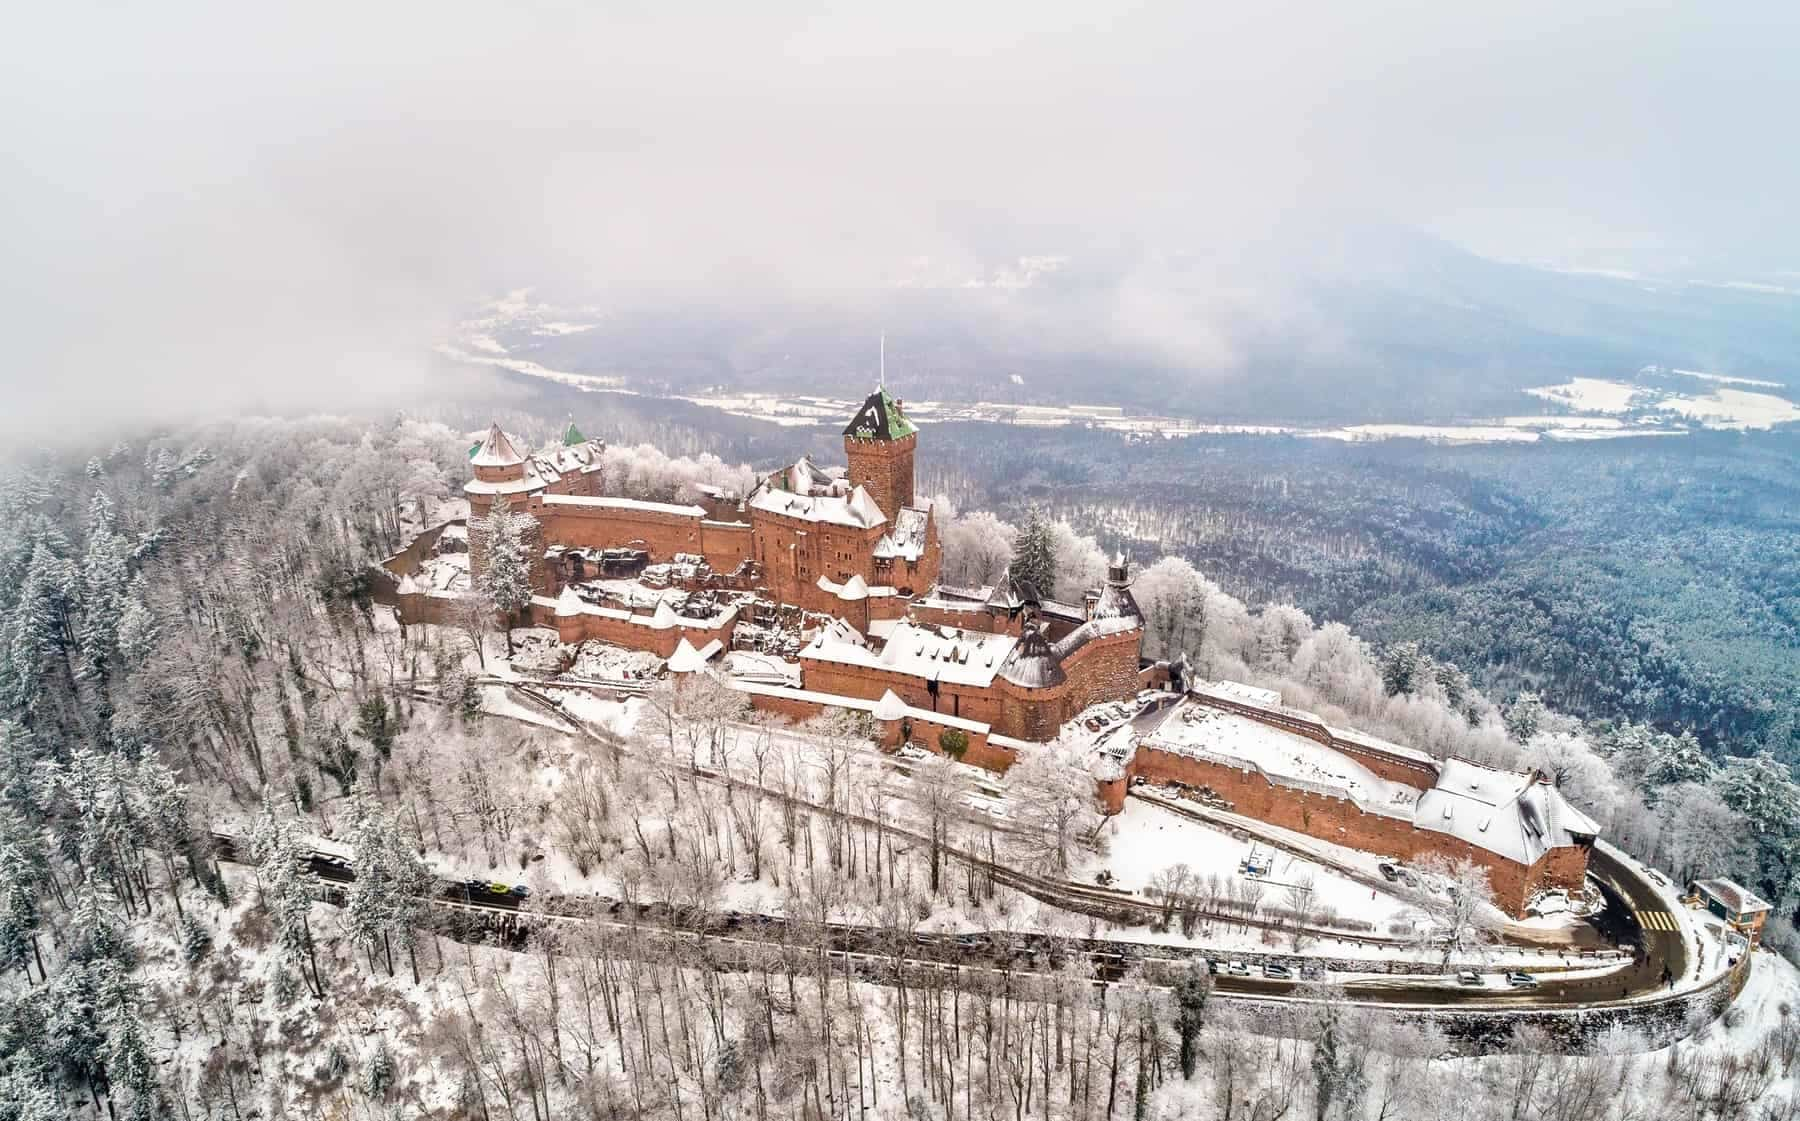 Winter view of the Chateau du Haut-Koenigsbourg in the Vosges mountains. A major tourist attraction in Alsace, France